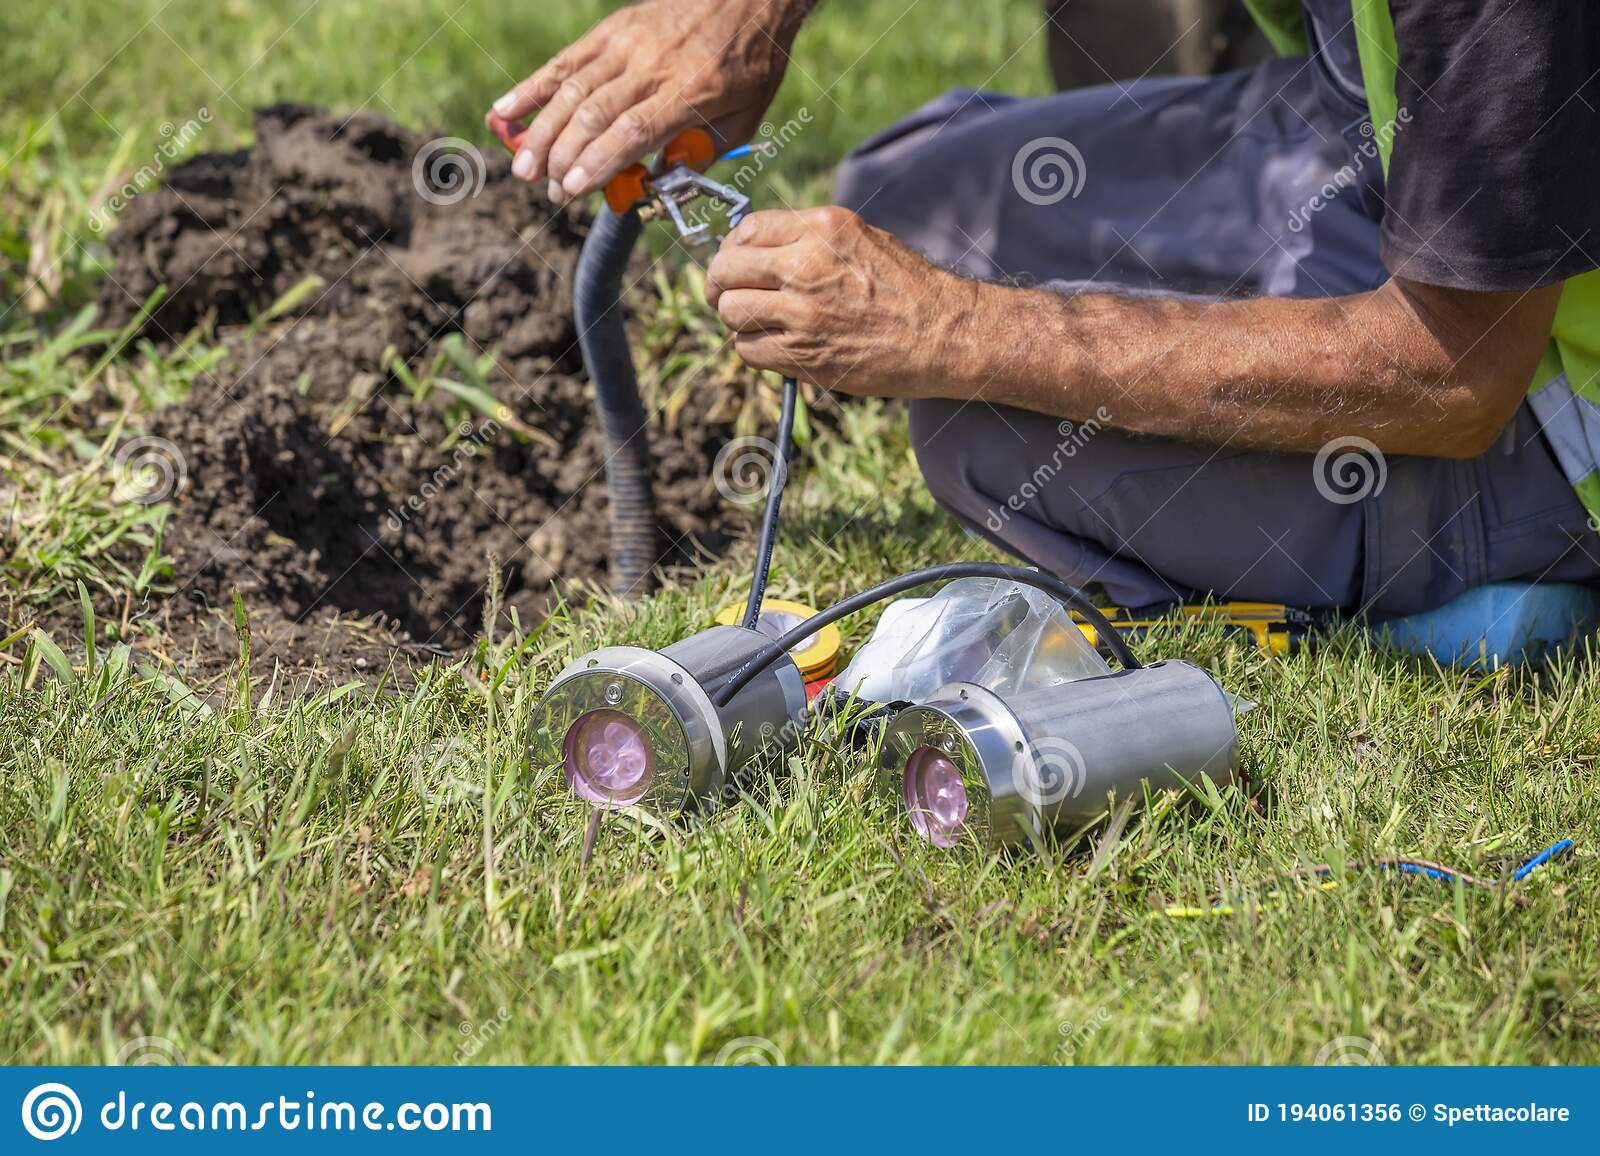 Installing Outdoor Ground Spots Lights Stock Photo Image Of Blue Energy 194061356